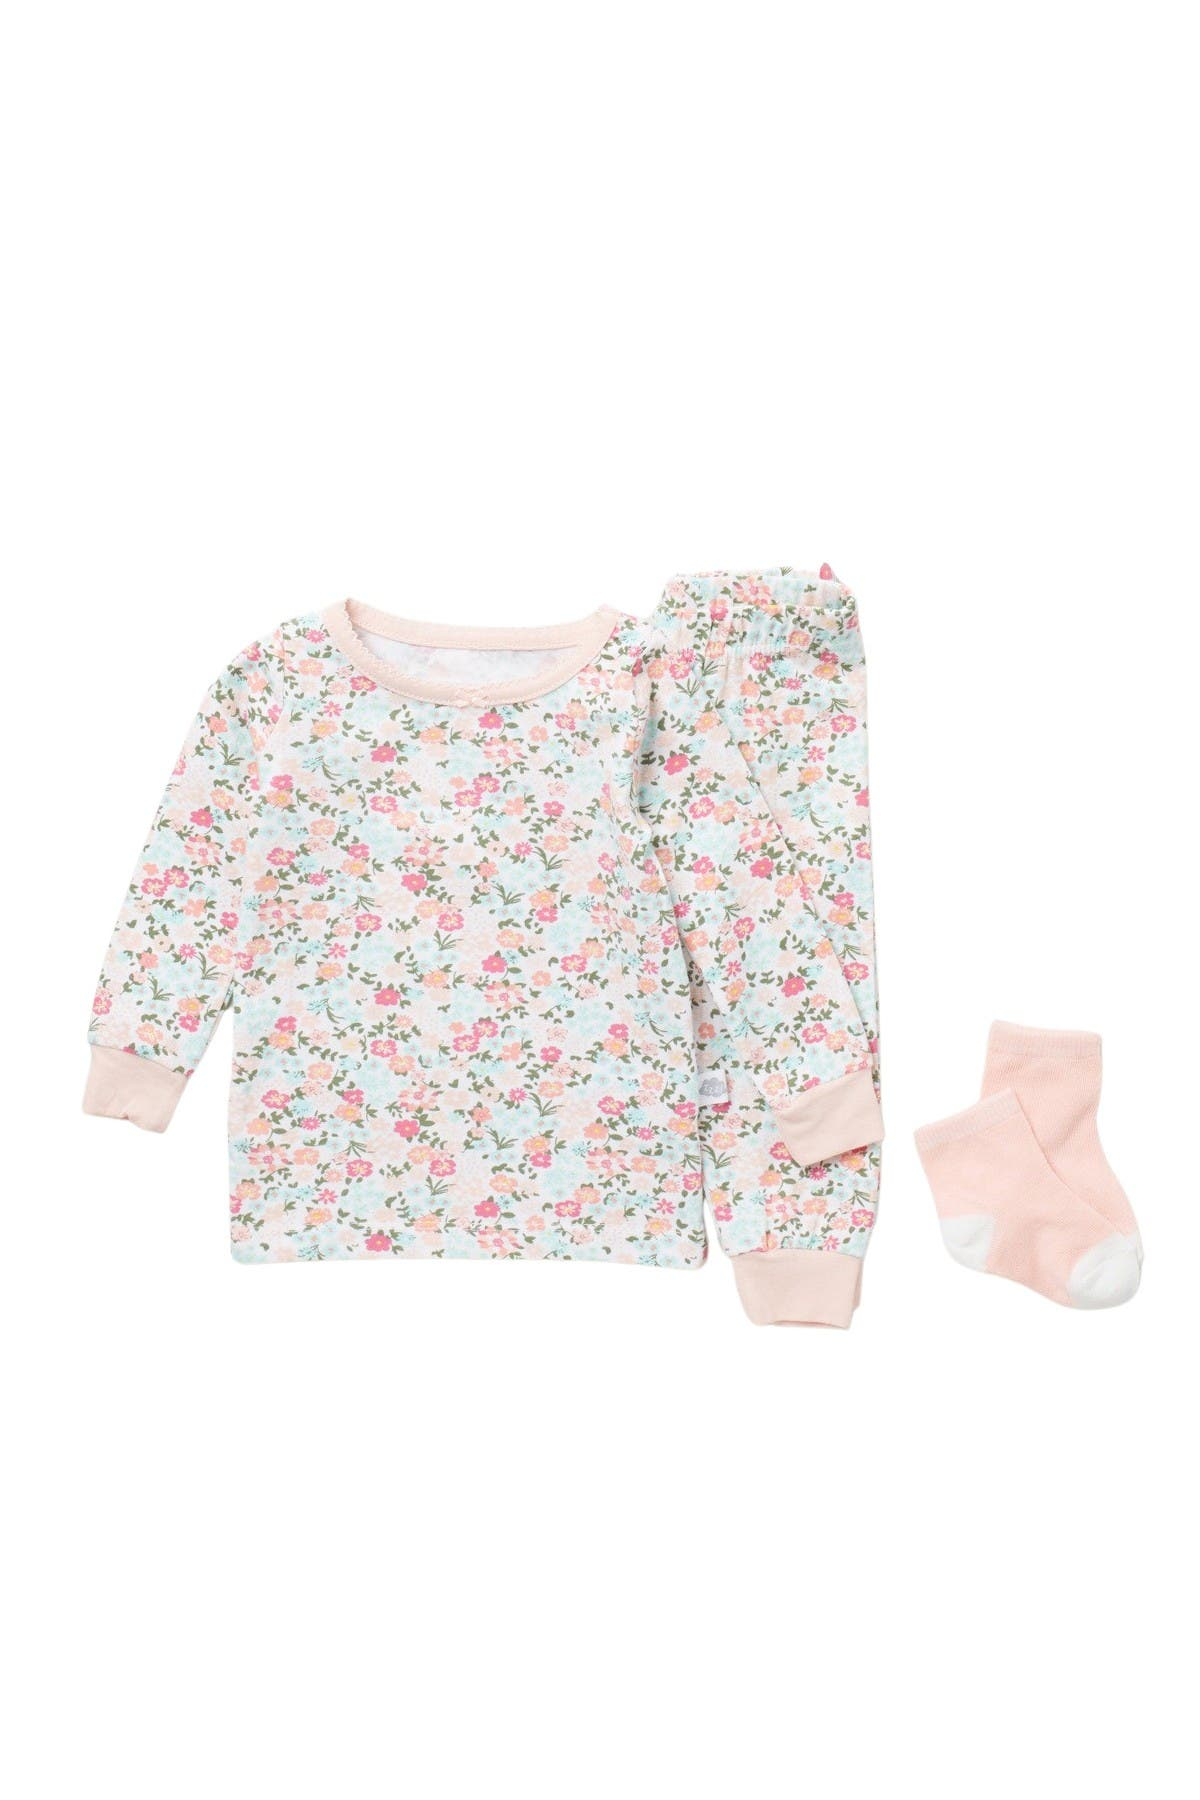 Image of CLOUD NINE Patterned Pajama Top, Pants & Socks